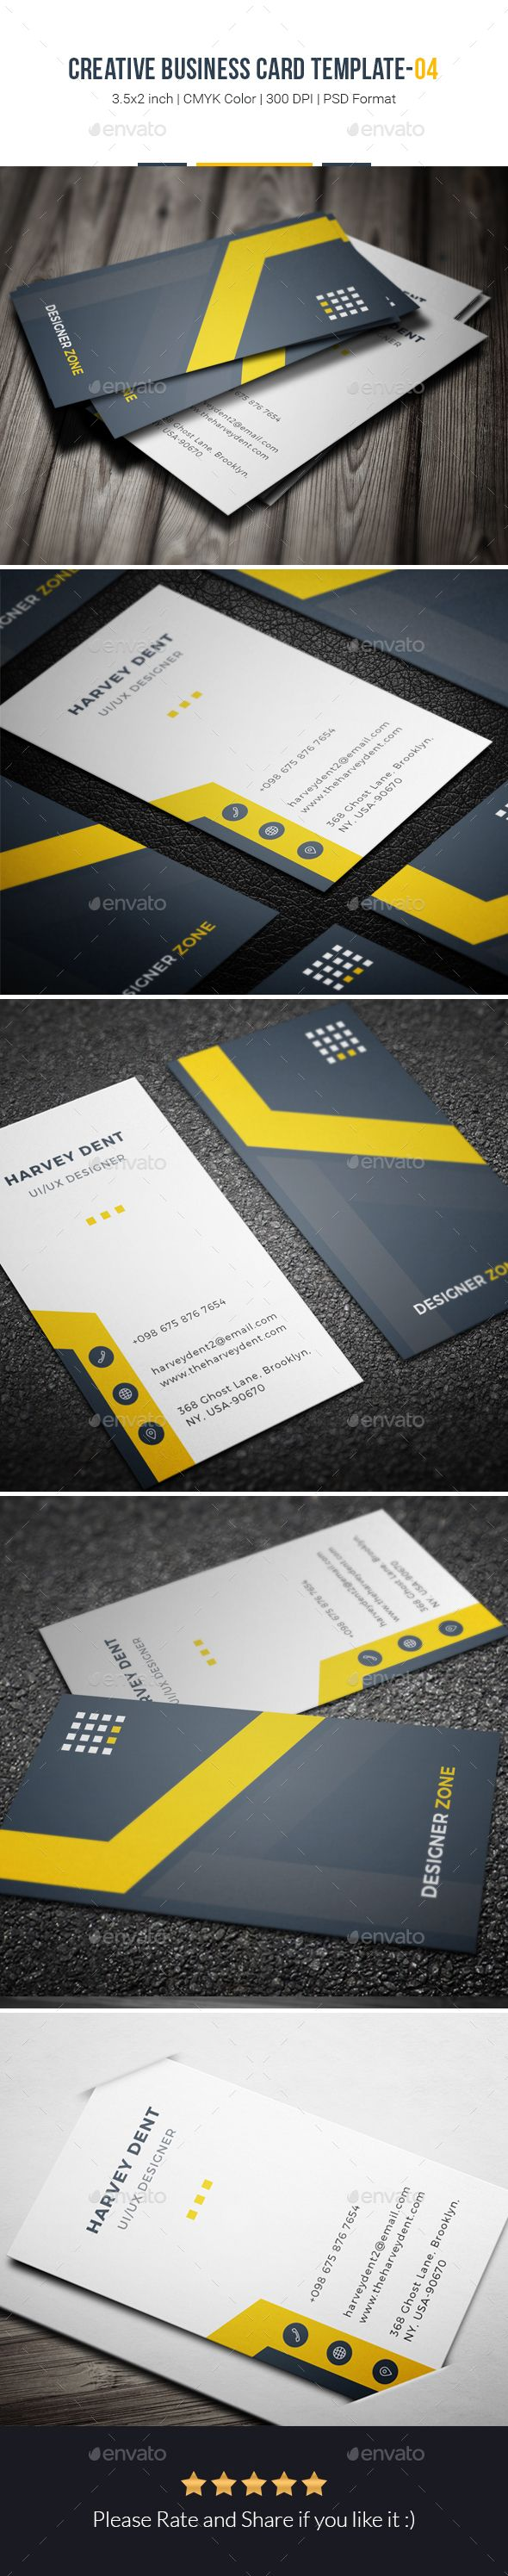 10 best rackin cards images on pinterest card patterns flyer corporate business card template psd reheart Images